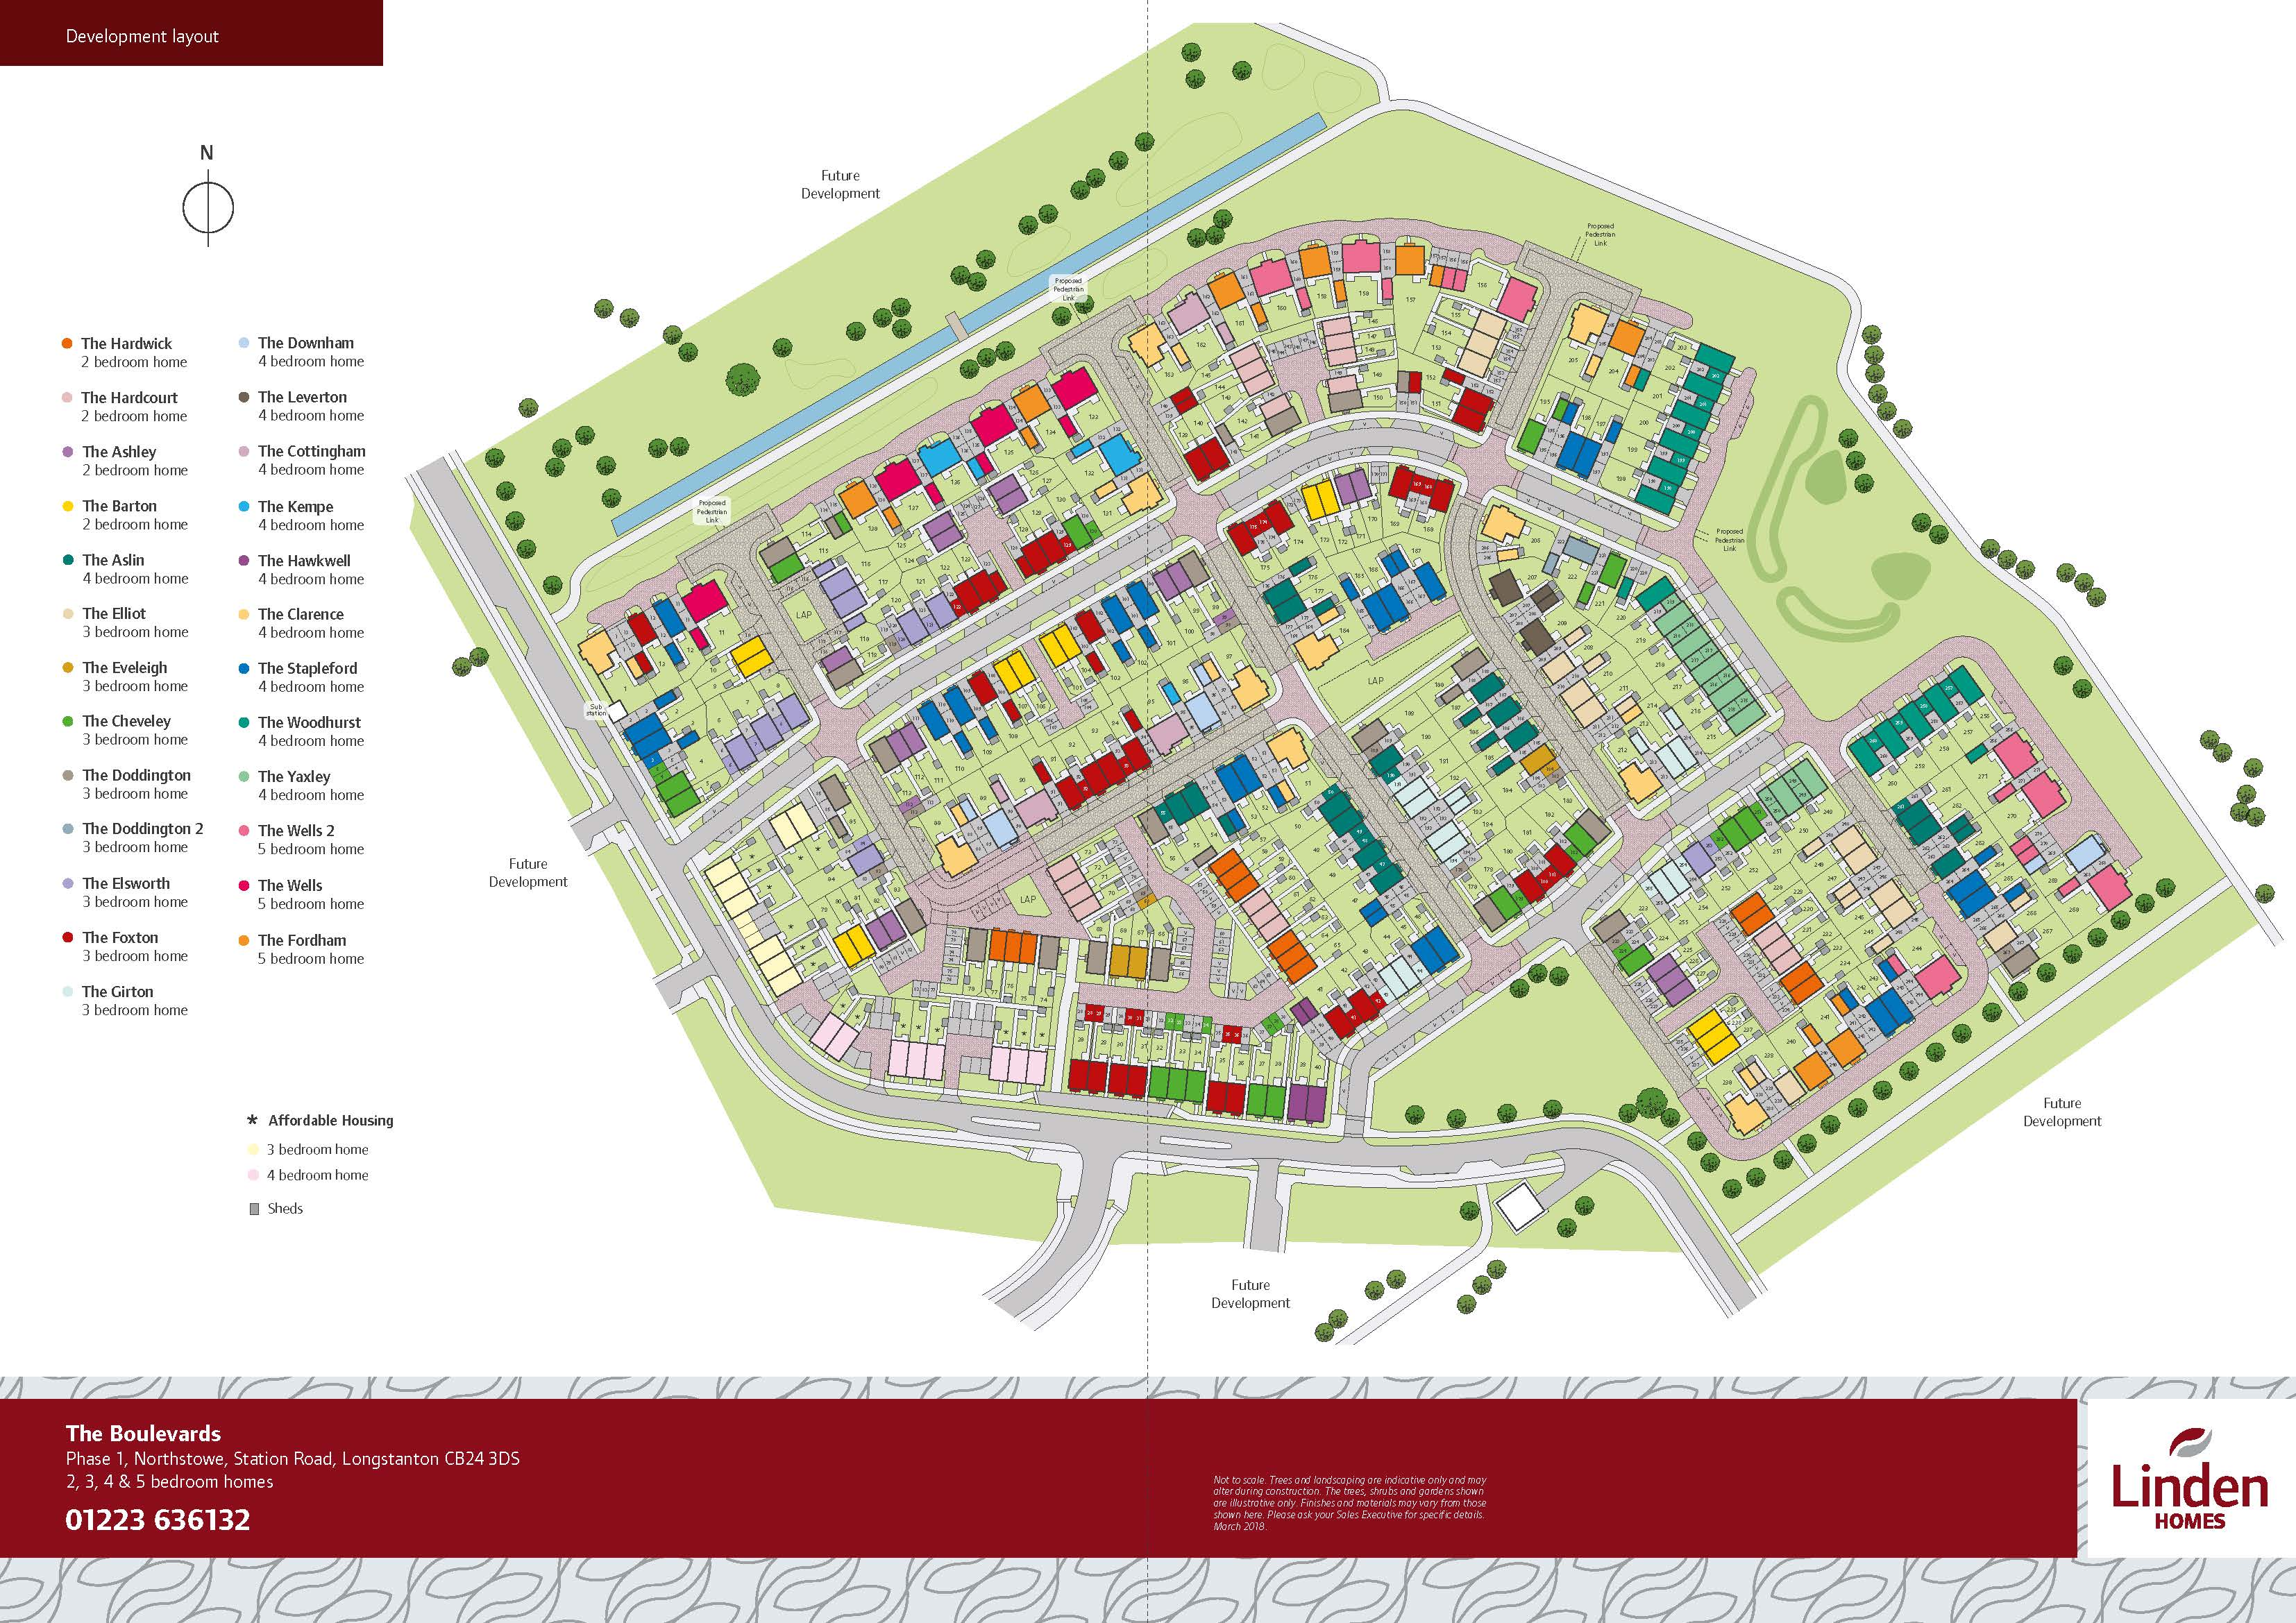 The Boulevards Site Map